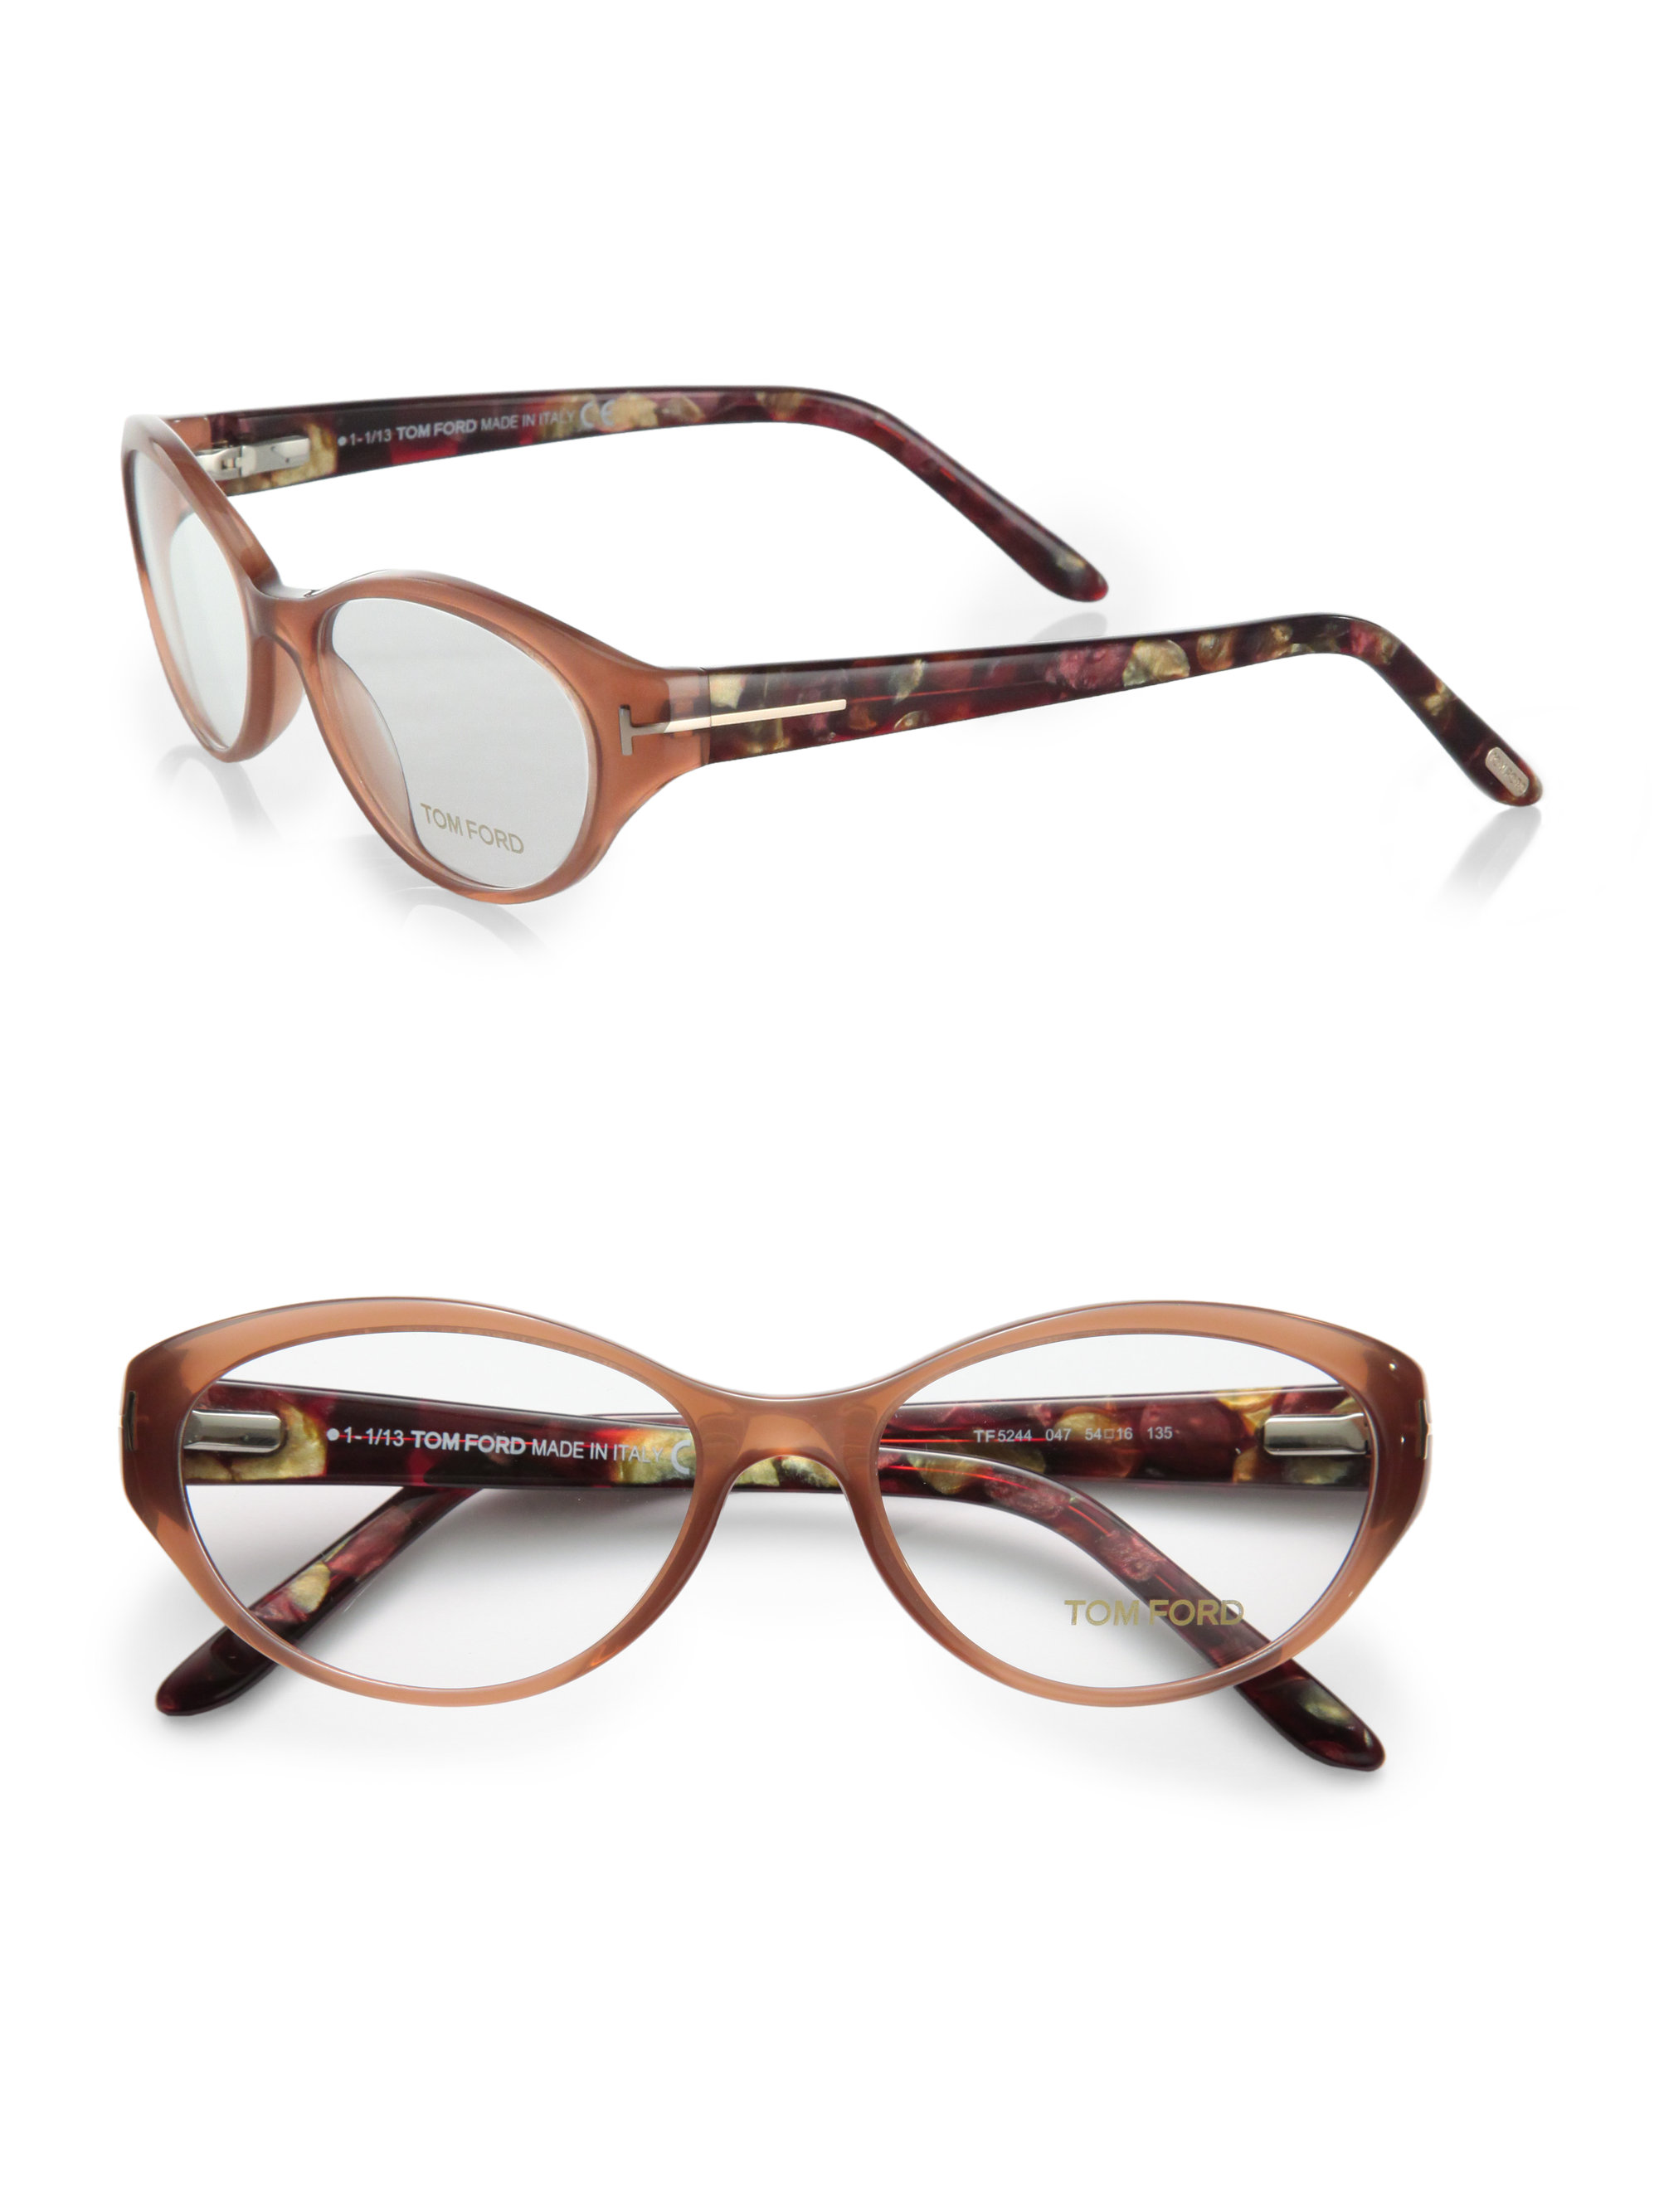 b6ecc96185c4 Lyst - Tom Ford Oval Reading Glasses in Brown